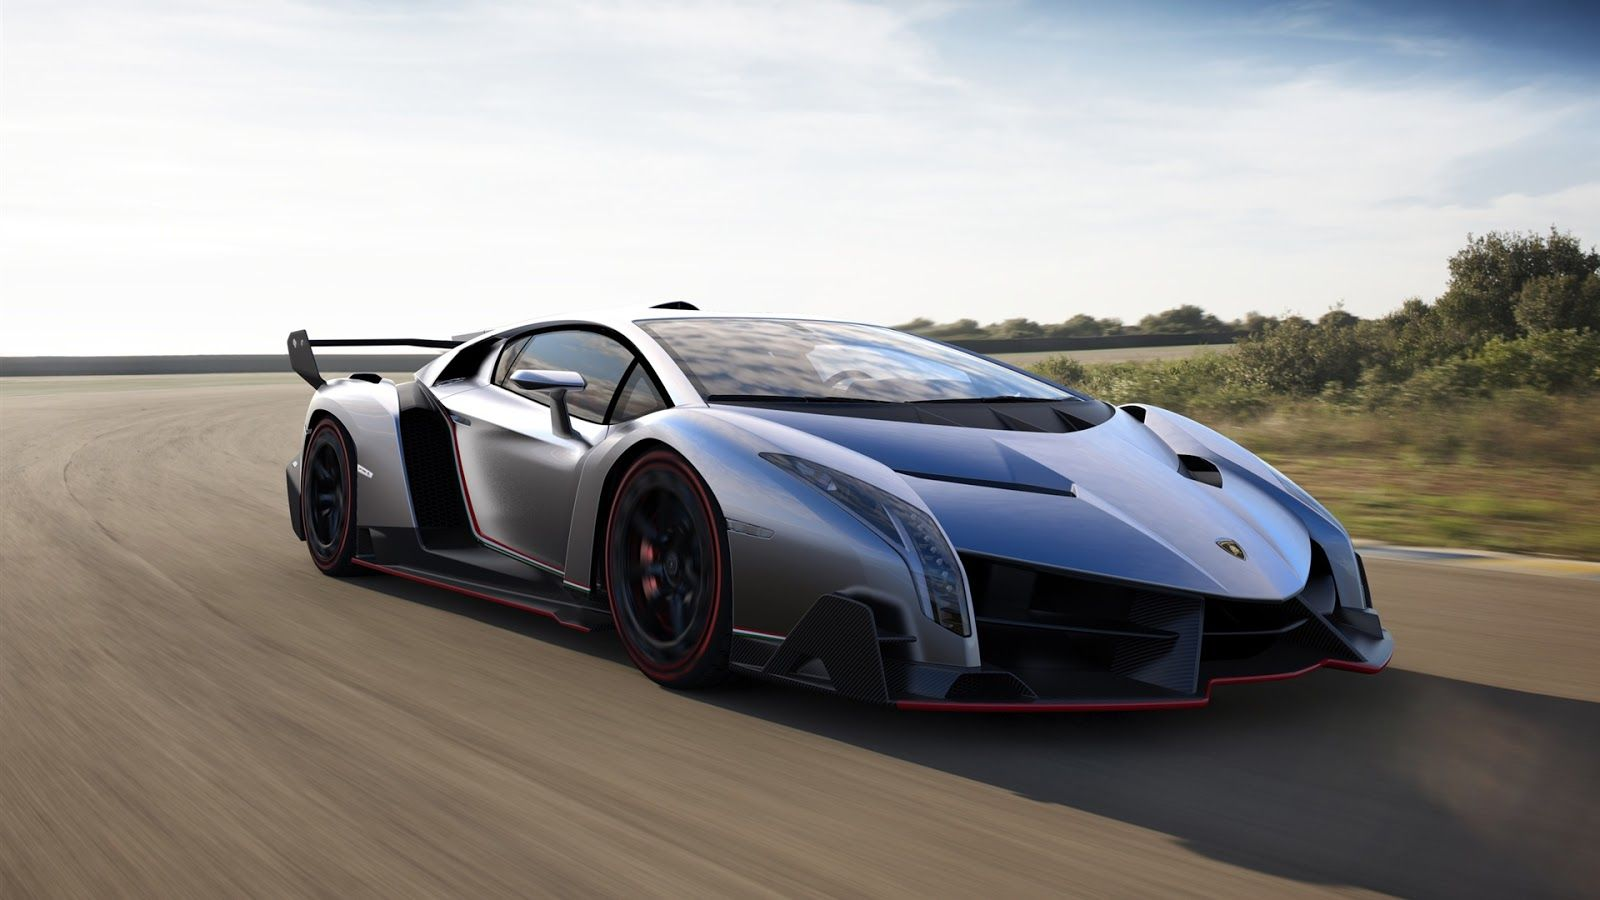 Supercars Hd Wallpapers 1080p   Viewing Gallery 1600x900